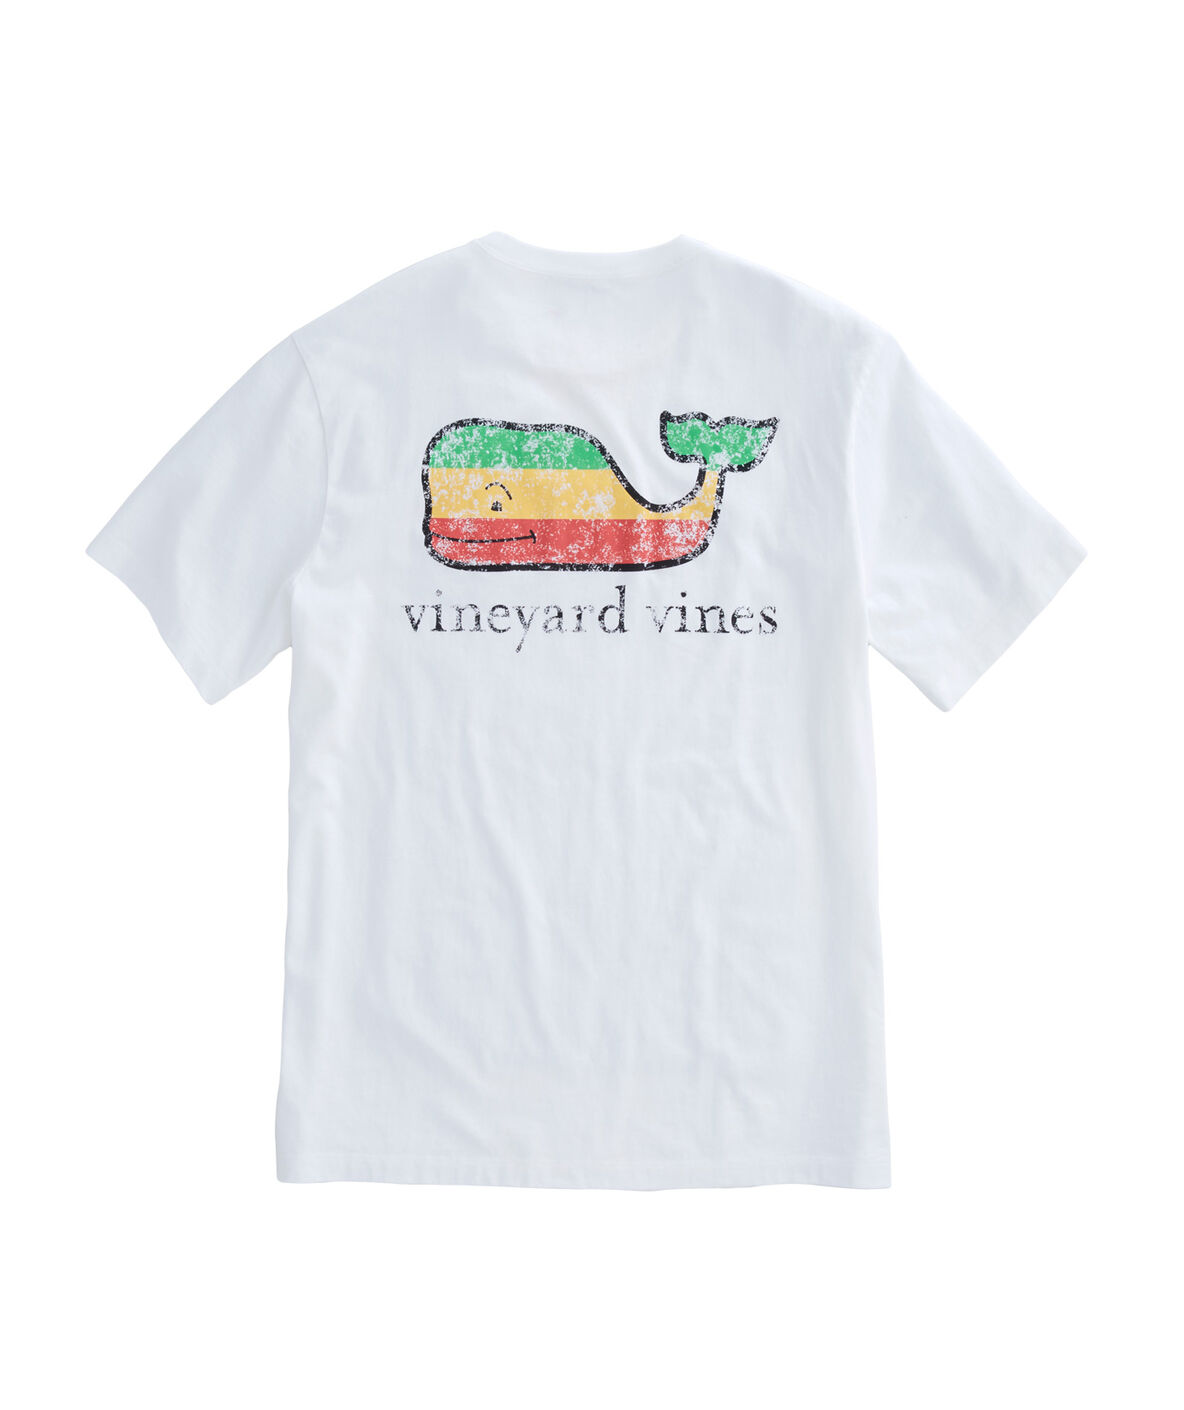 Vineyard Vines is not your typical fashion e-boutique. Since its foundation in the late s, it has provided its customers with a distinctive sense of fashion.